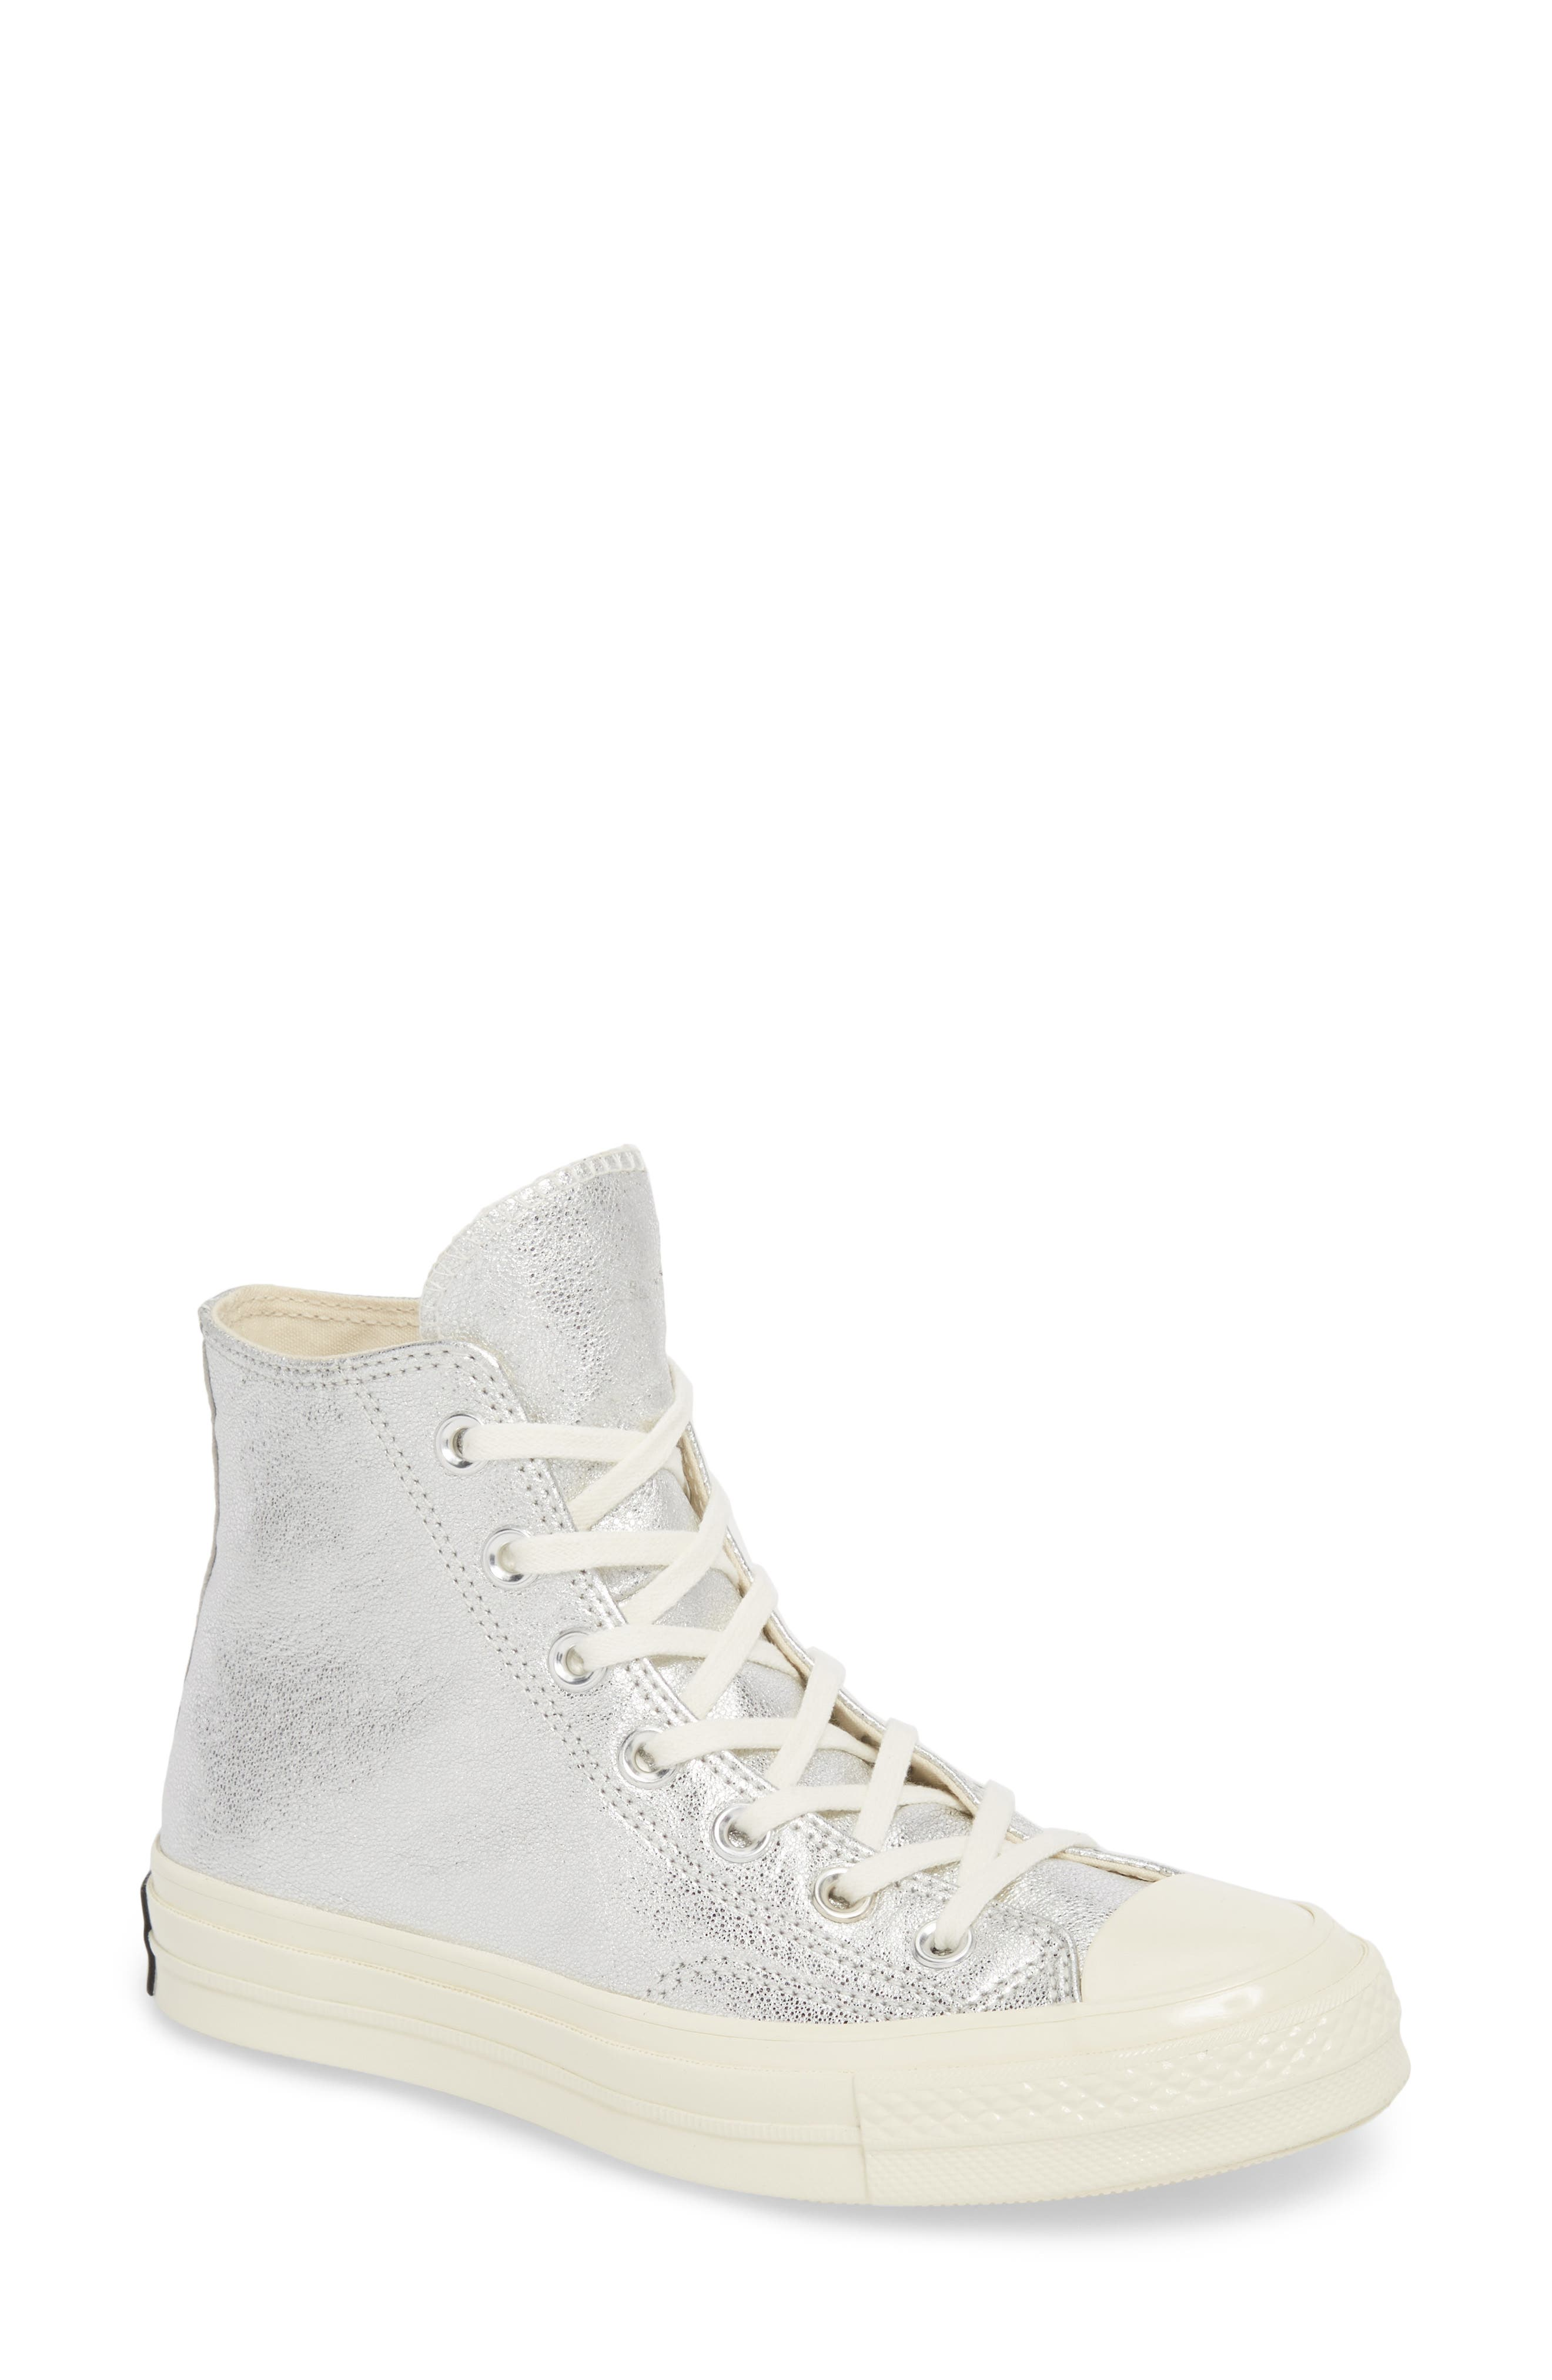 Chuck Taylor<sup>®</sup> All Star<sup>®</sup> Heavy Metal 70 High Top Sneaker,                         Main,                         color,